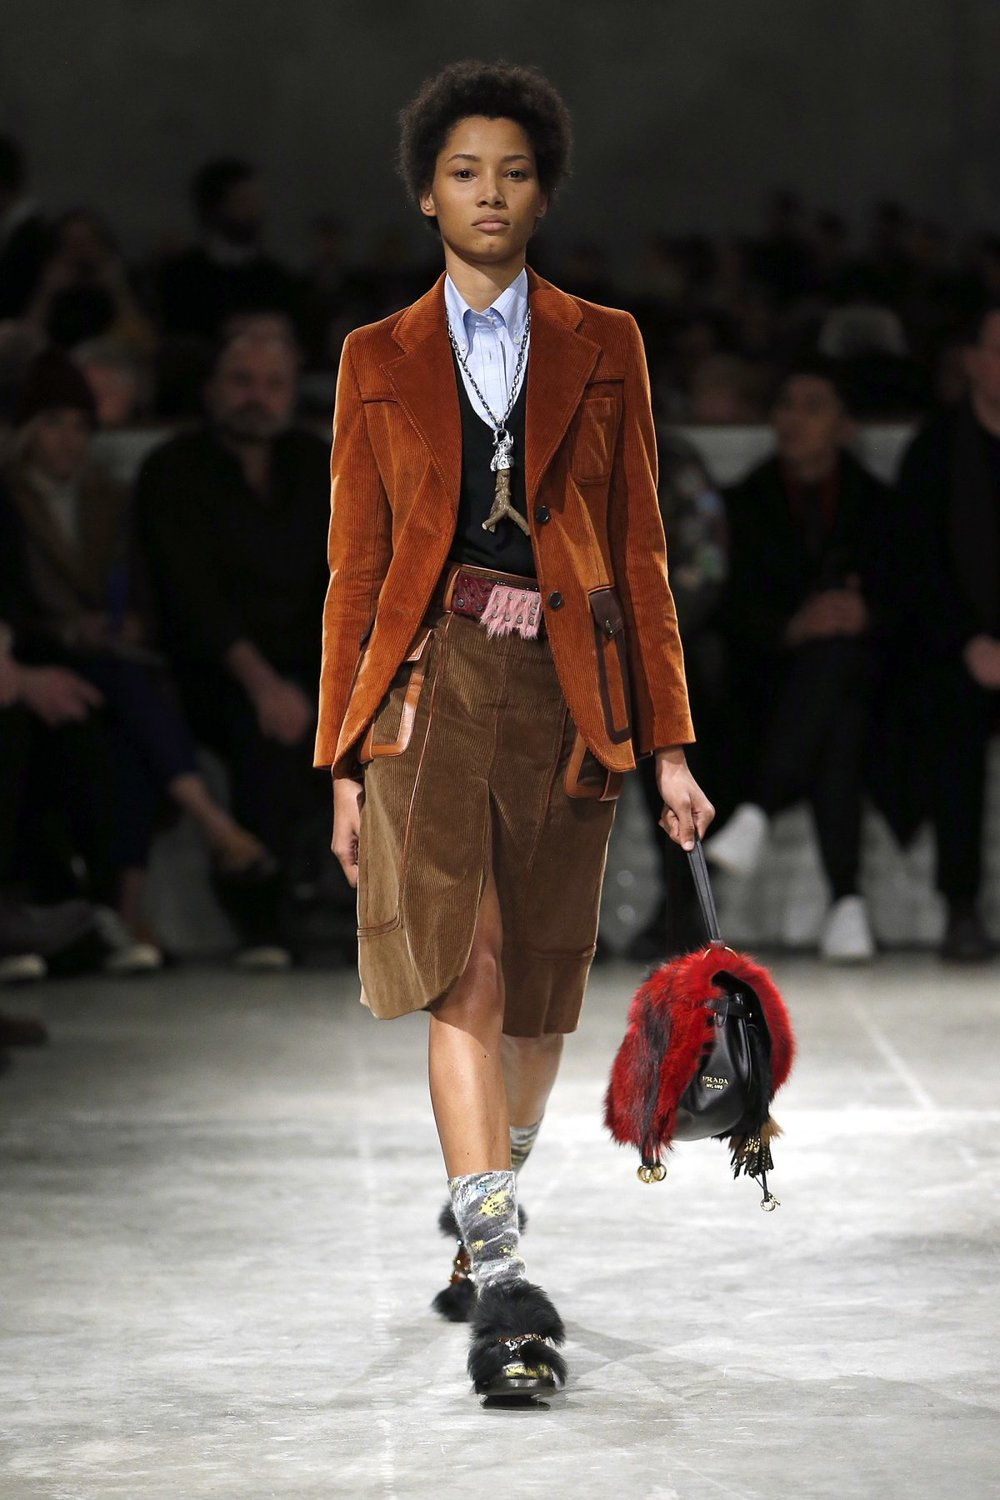 prada_look_16_2017_aw_mens.jpeg